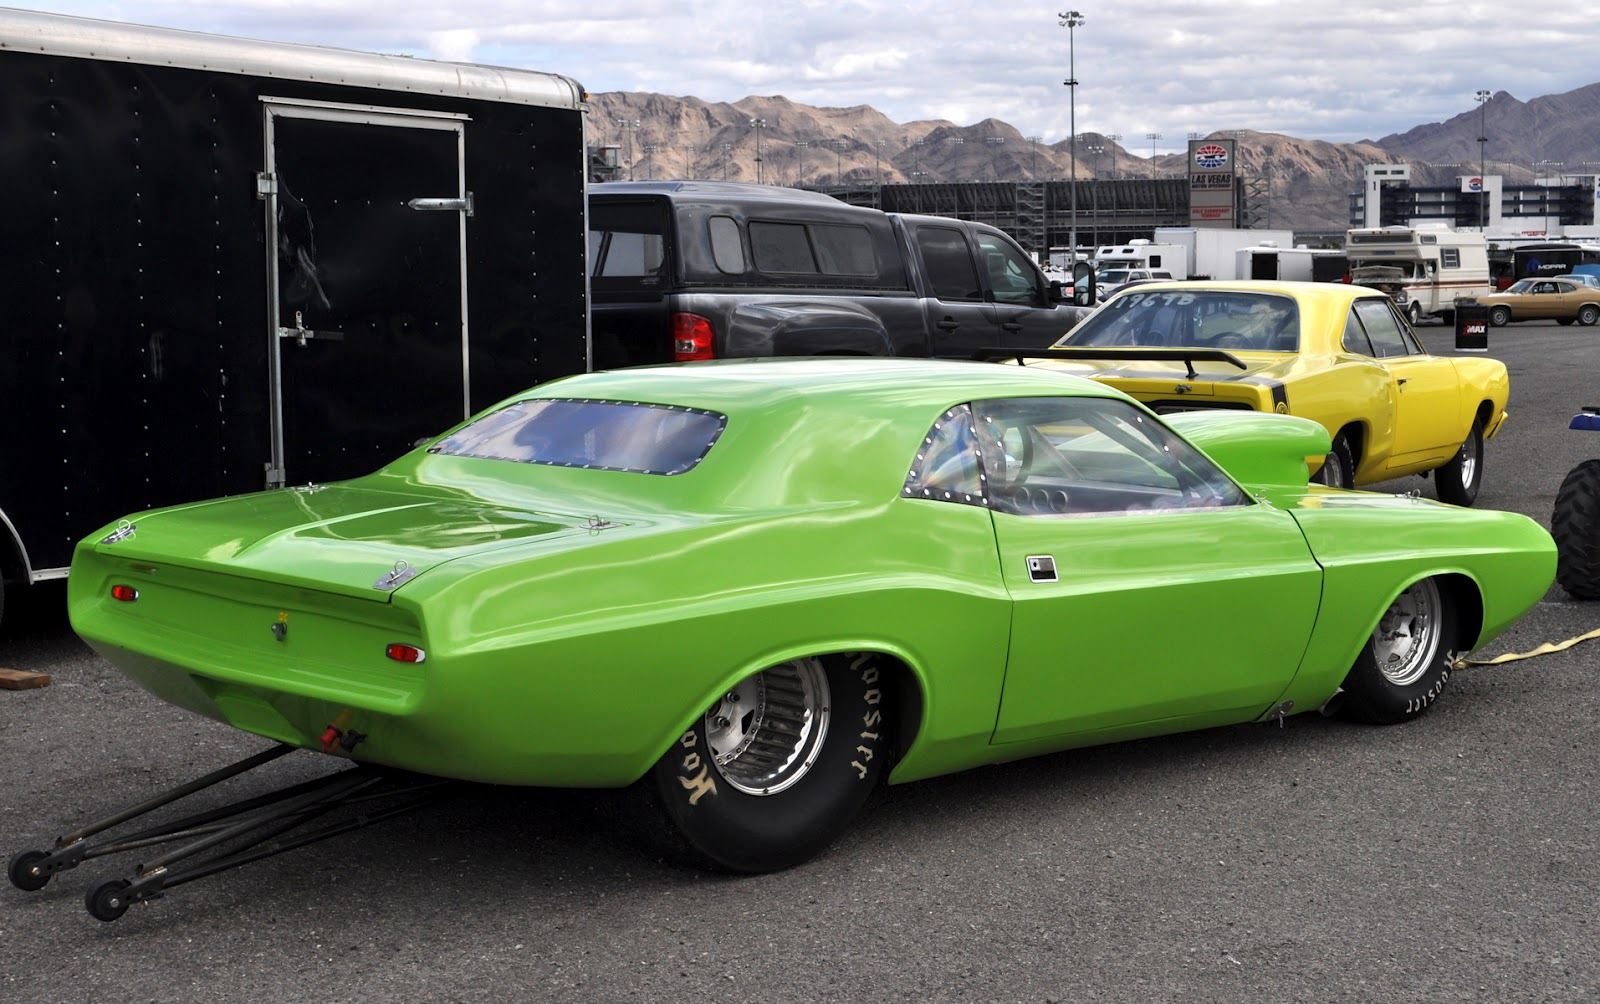 Classic Cars Authority: Mopar Muscle cars from all over the pits ...